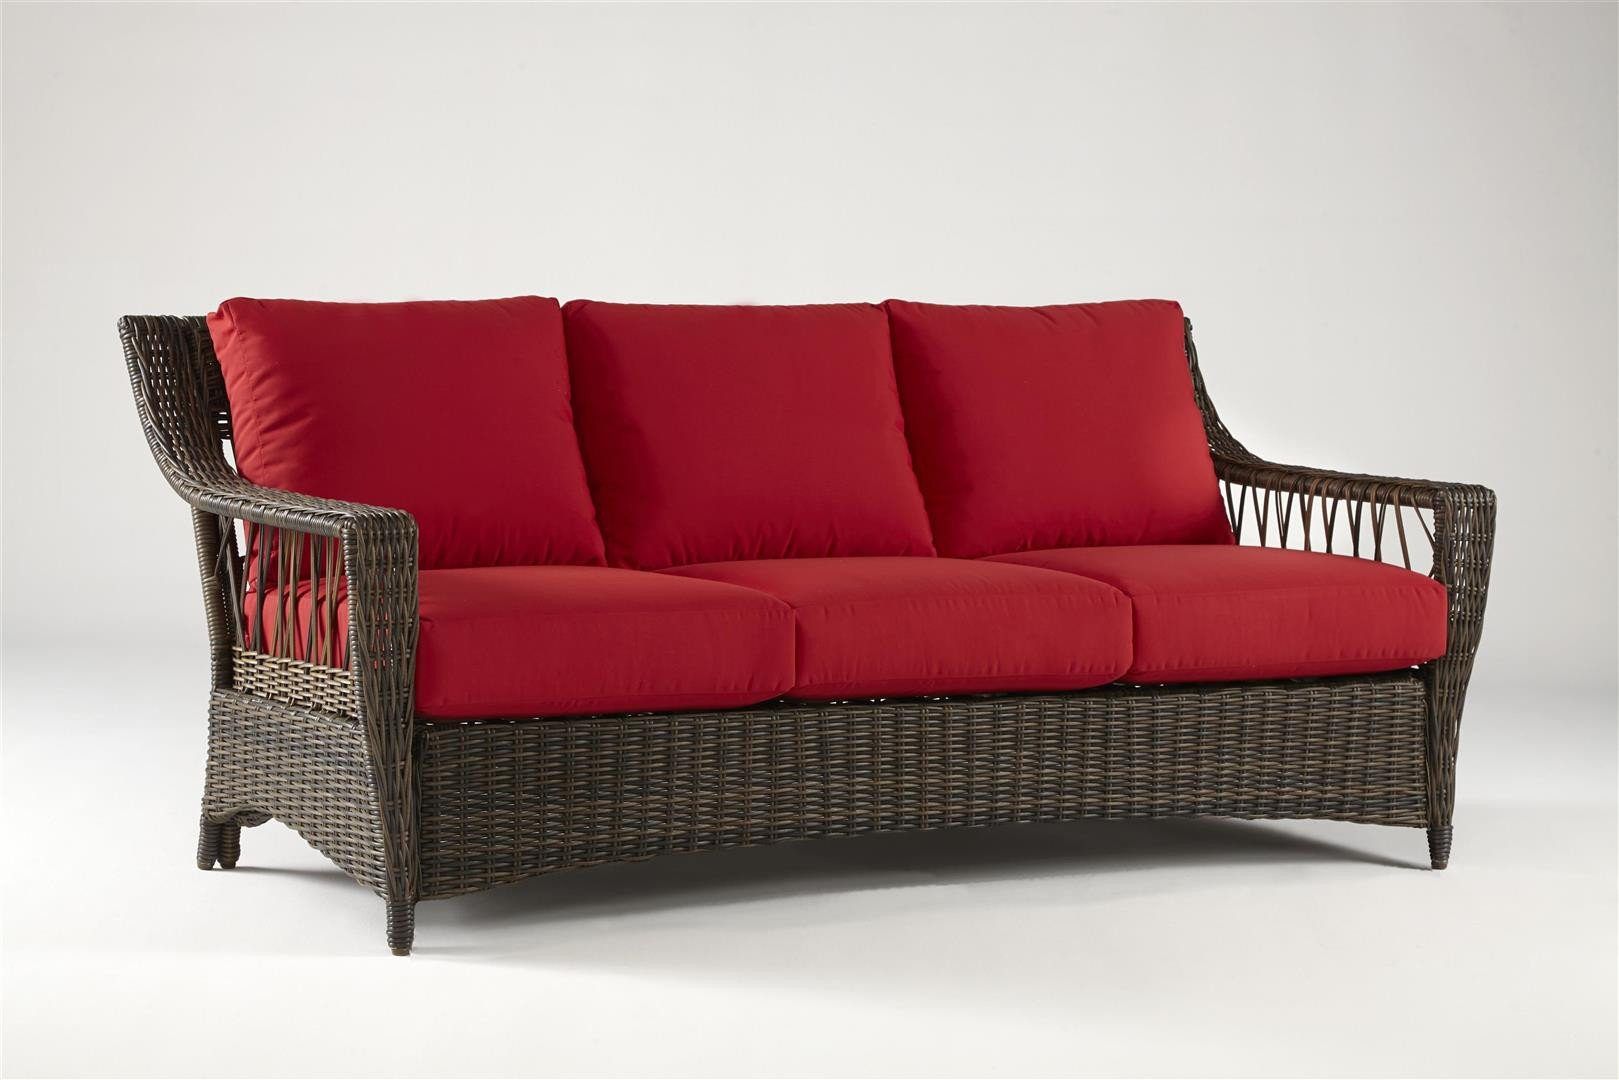 South Sea Rattan South Sea Rattan St. John Sofa Sofa - Rattan Imports